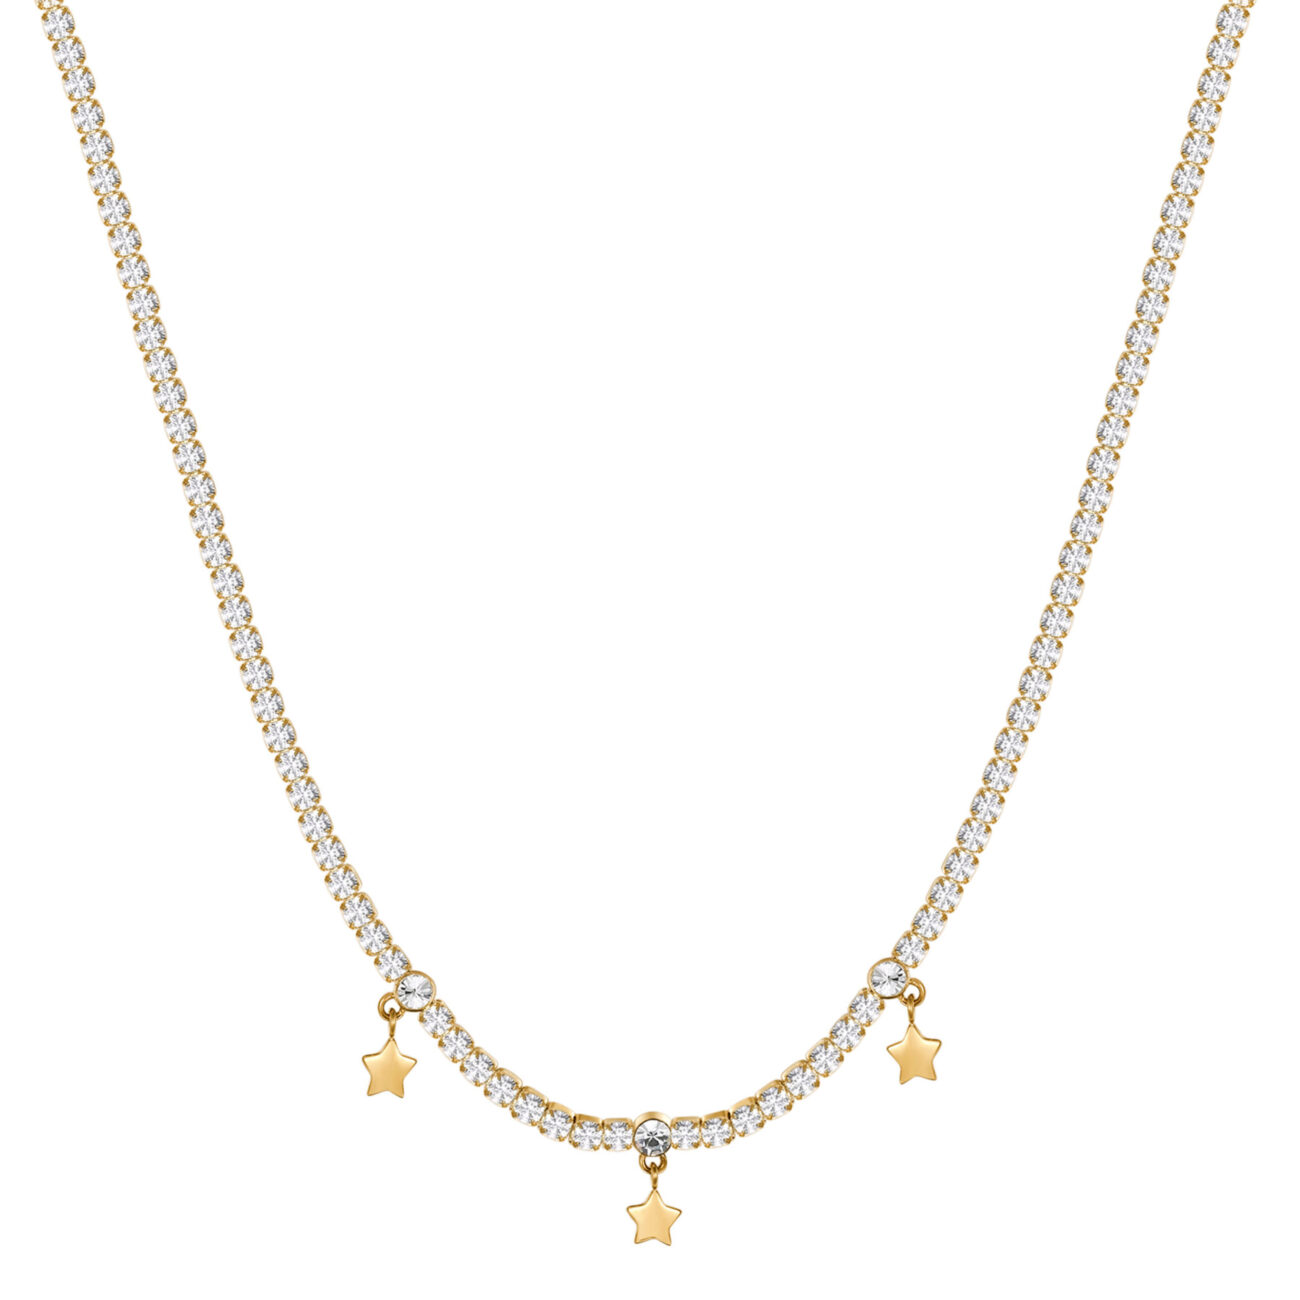 304L stainless steel necklace and gold finishes with stars, white cubic zirconia and crystal.